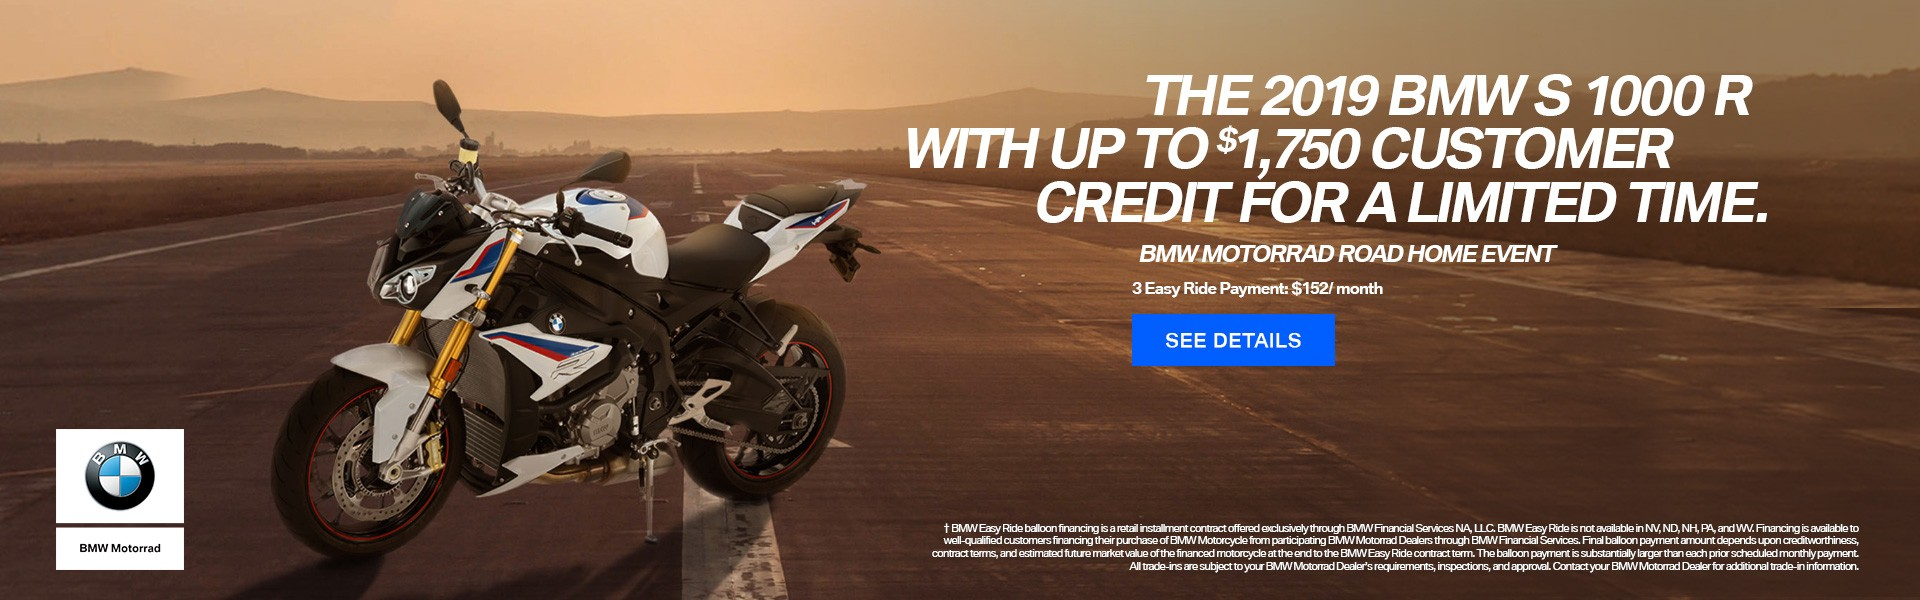 The 2019 BMW S 1000 R with up to $1750 Customer Credit for a limited time.